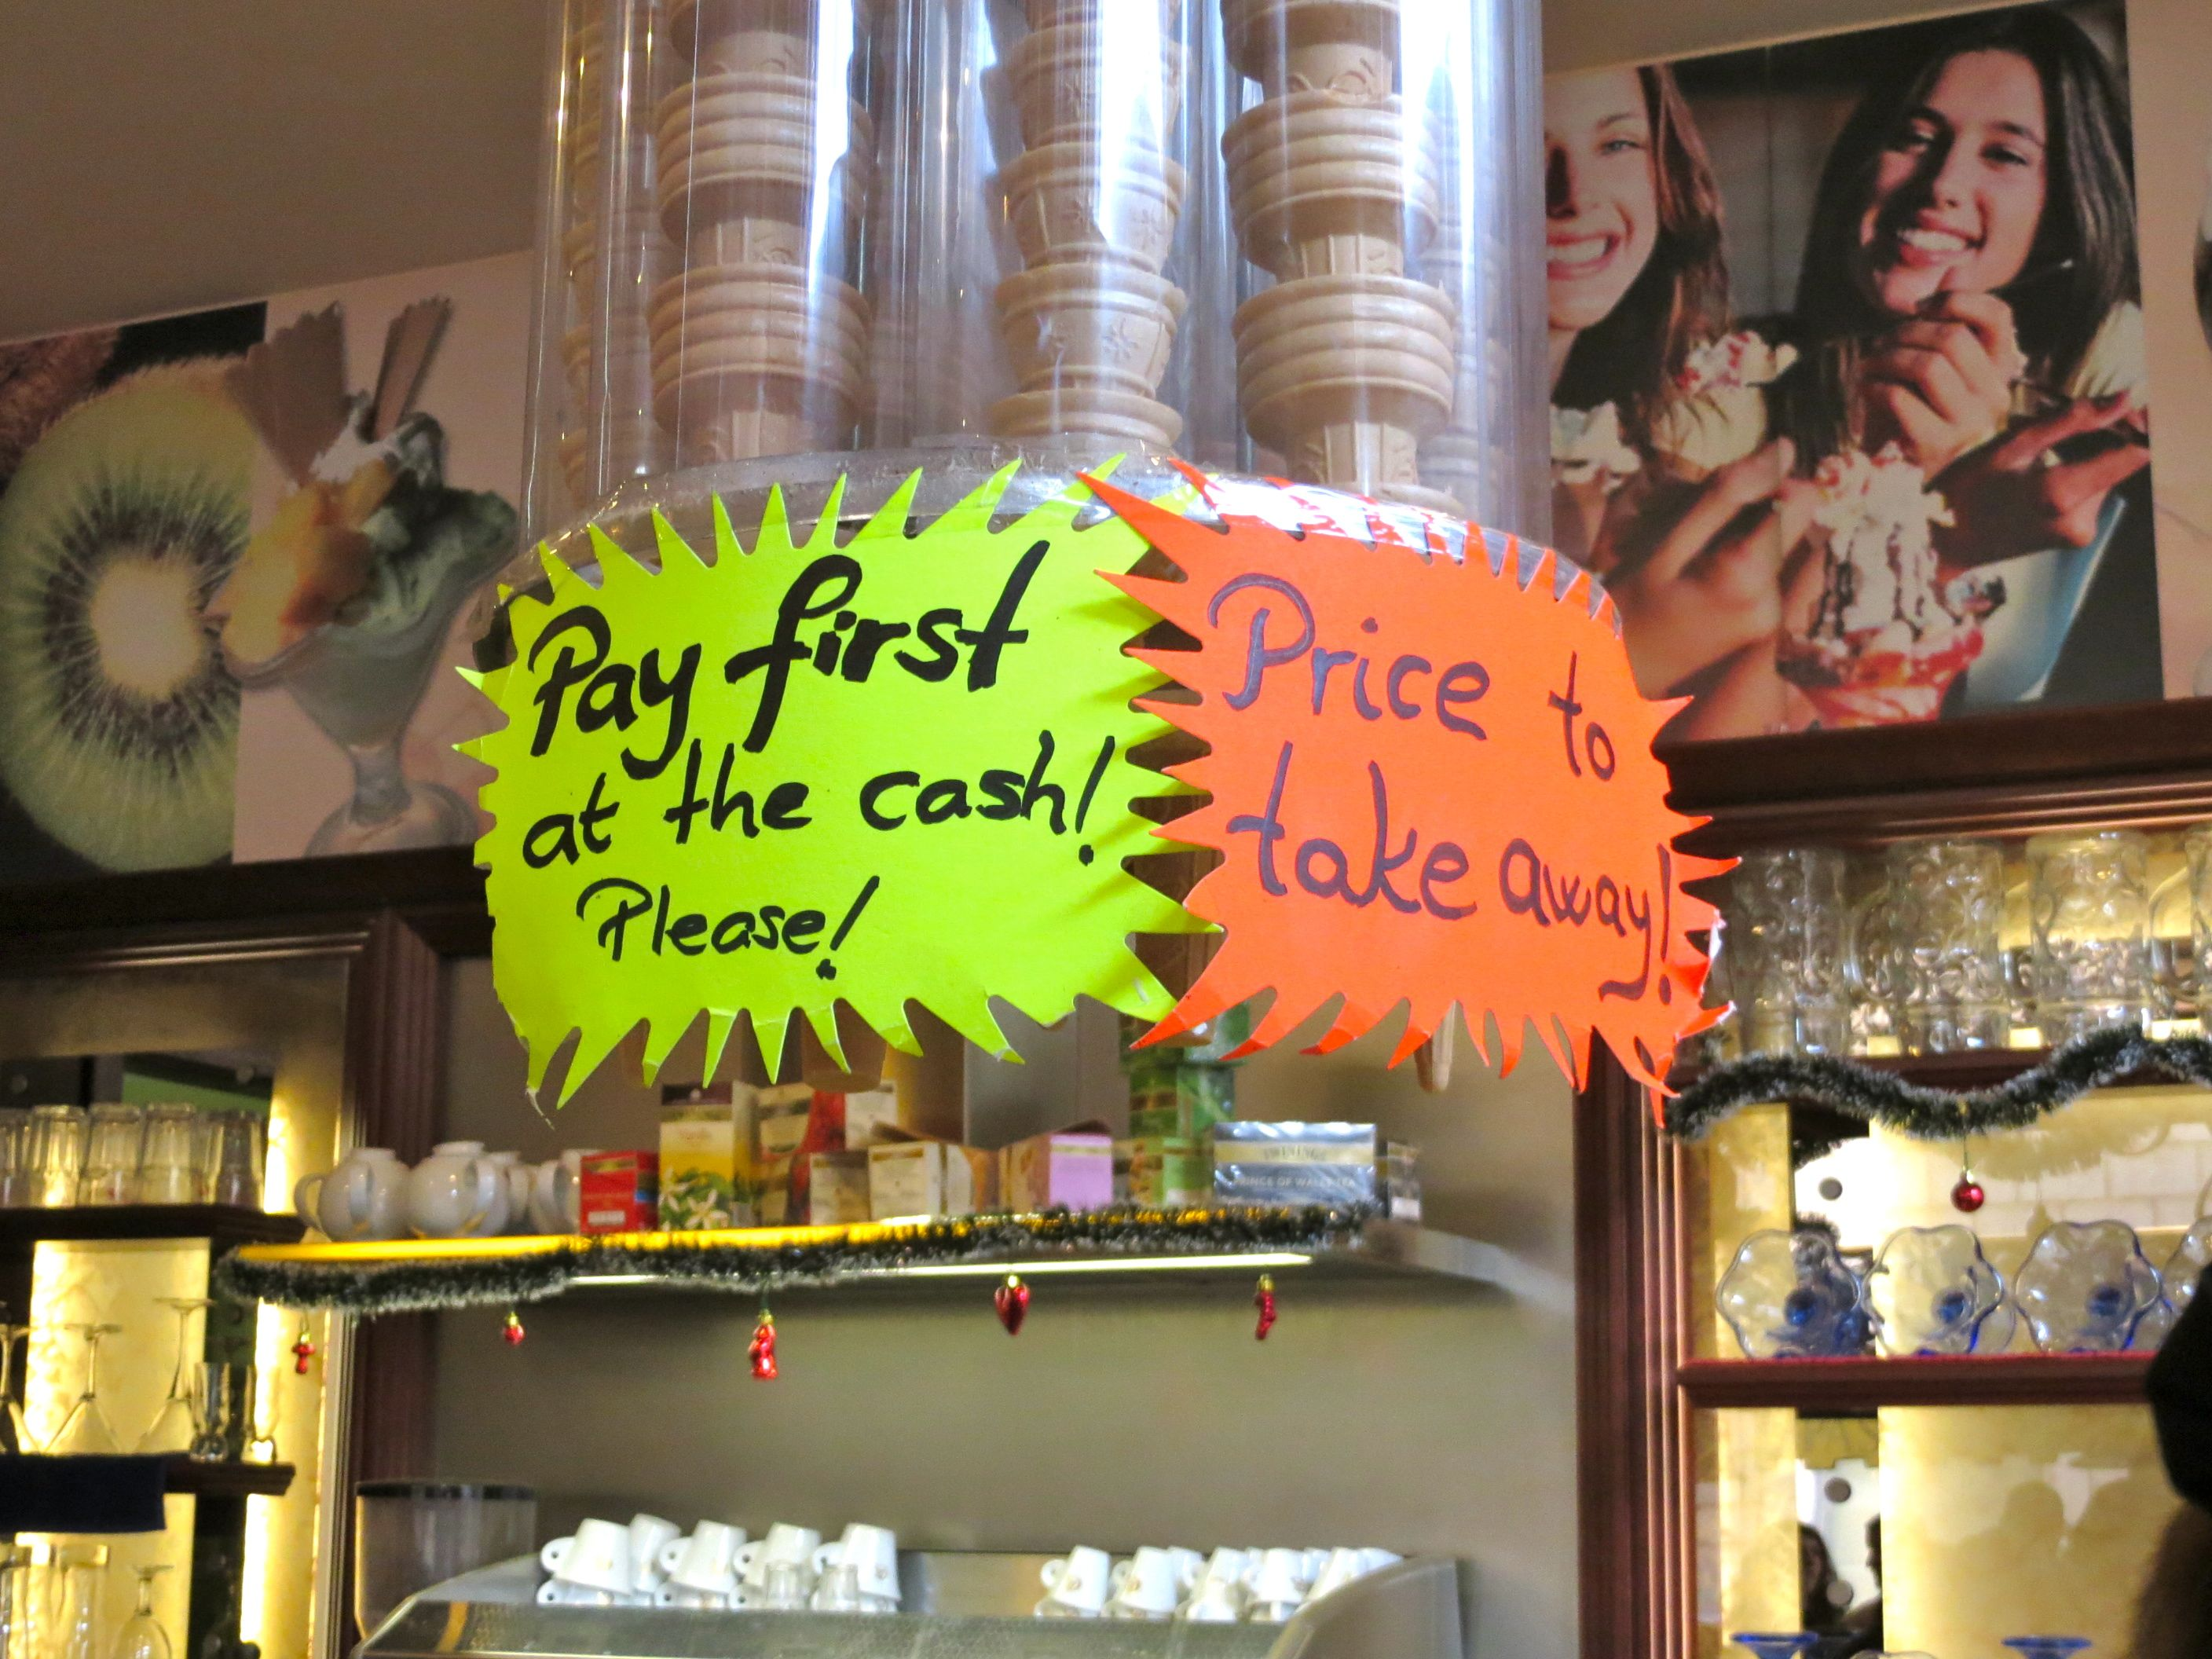 Pay first Italian bar- Italy from the Inside